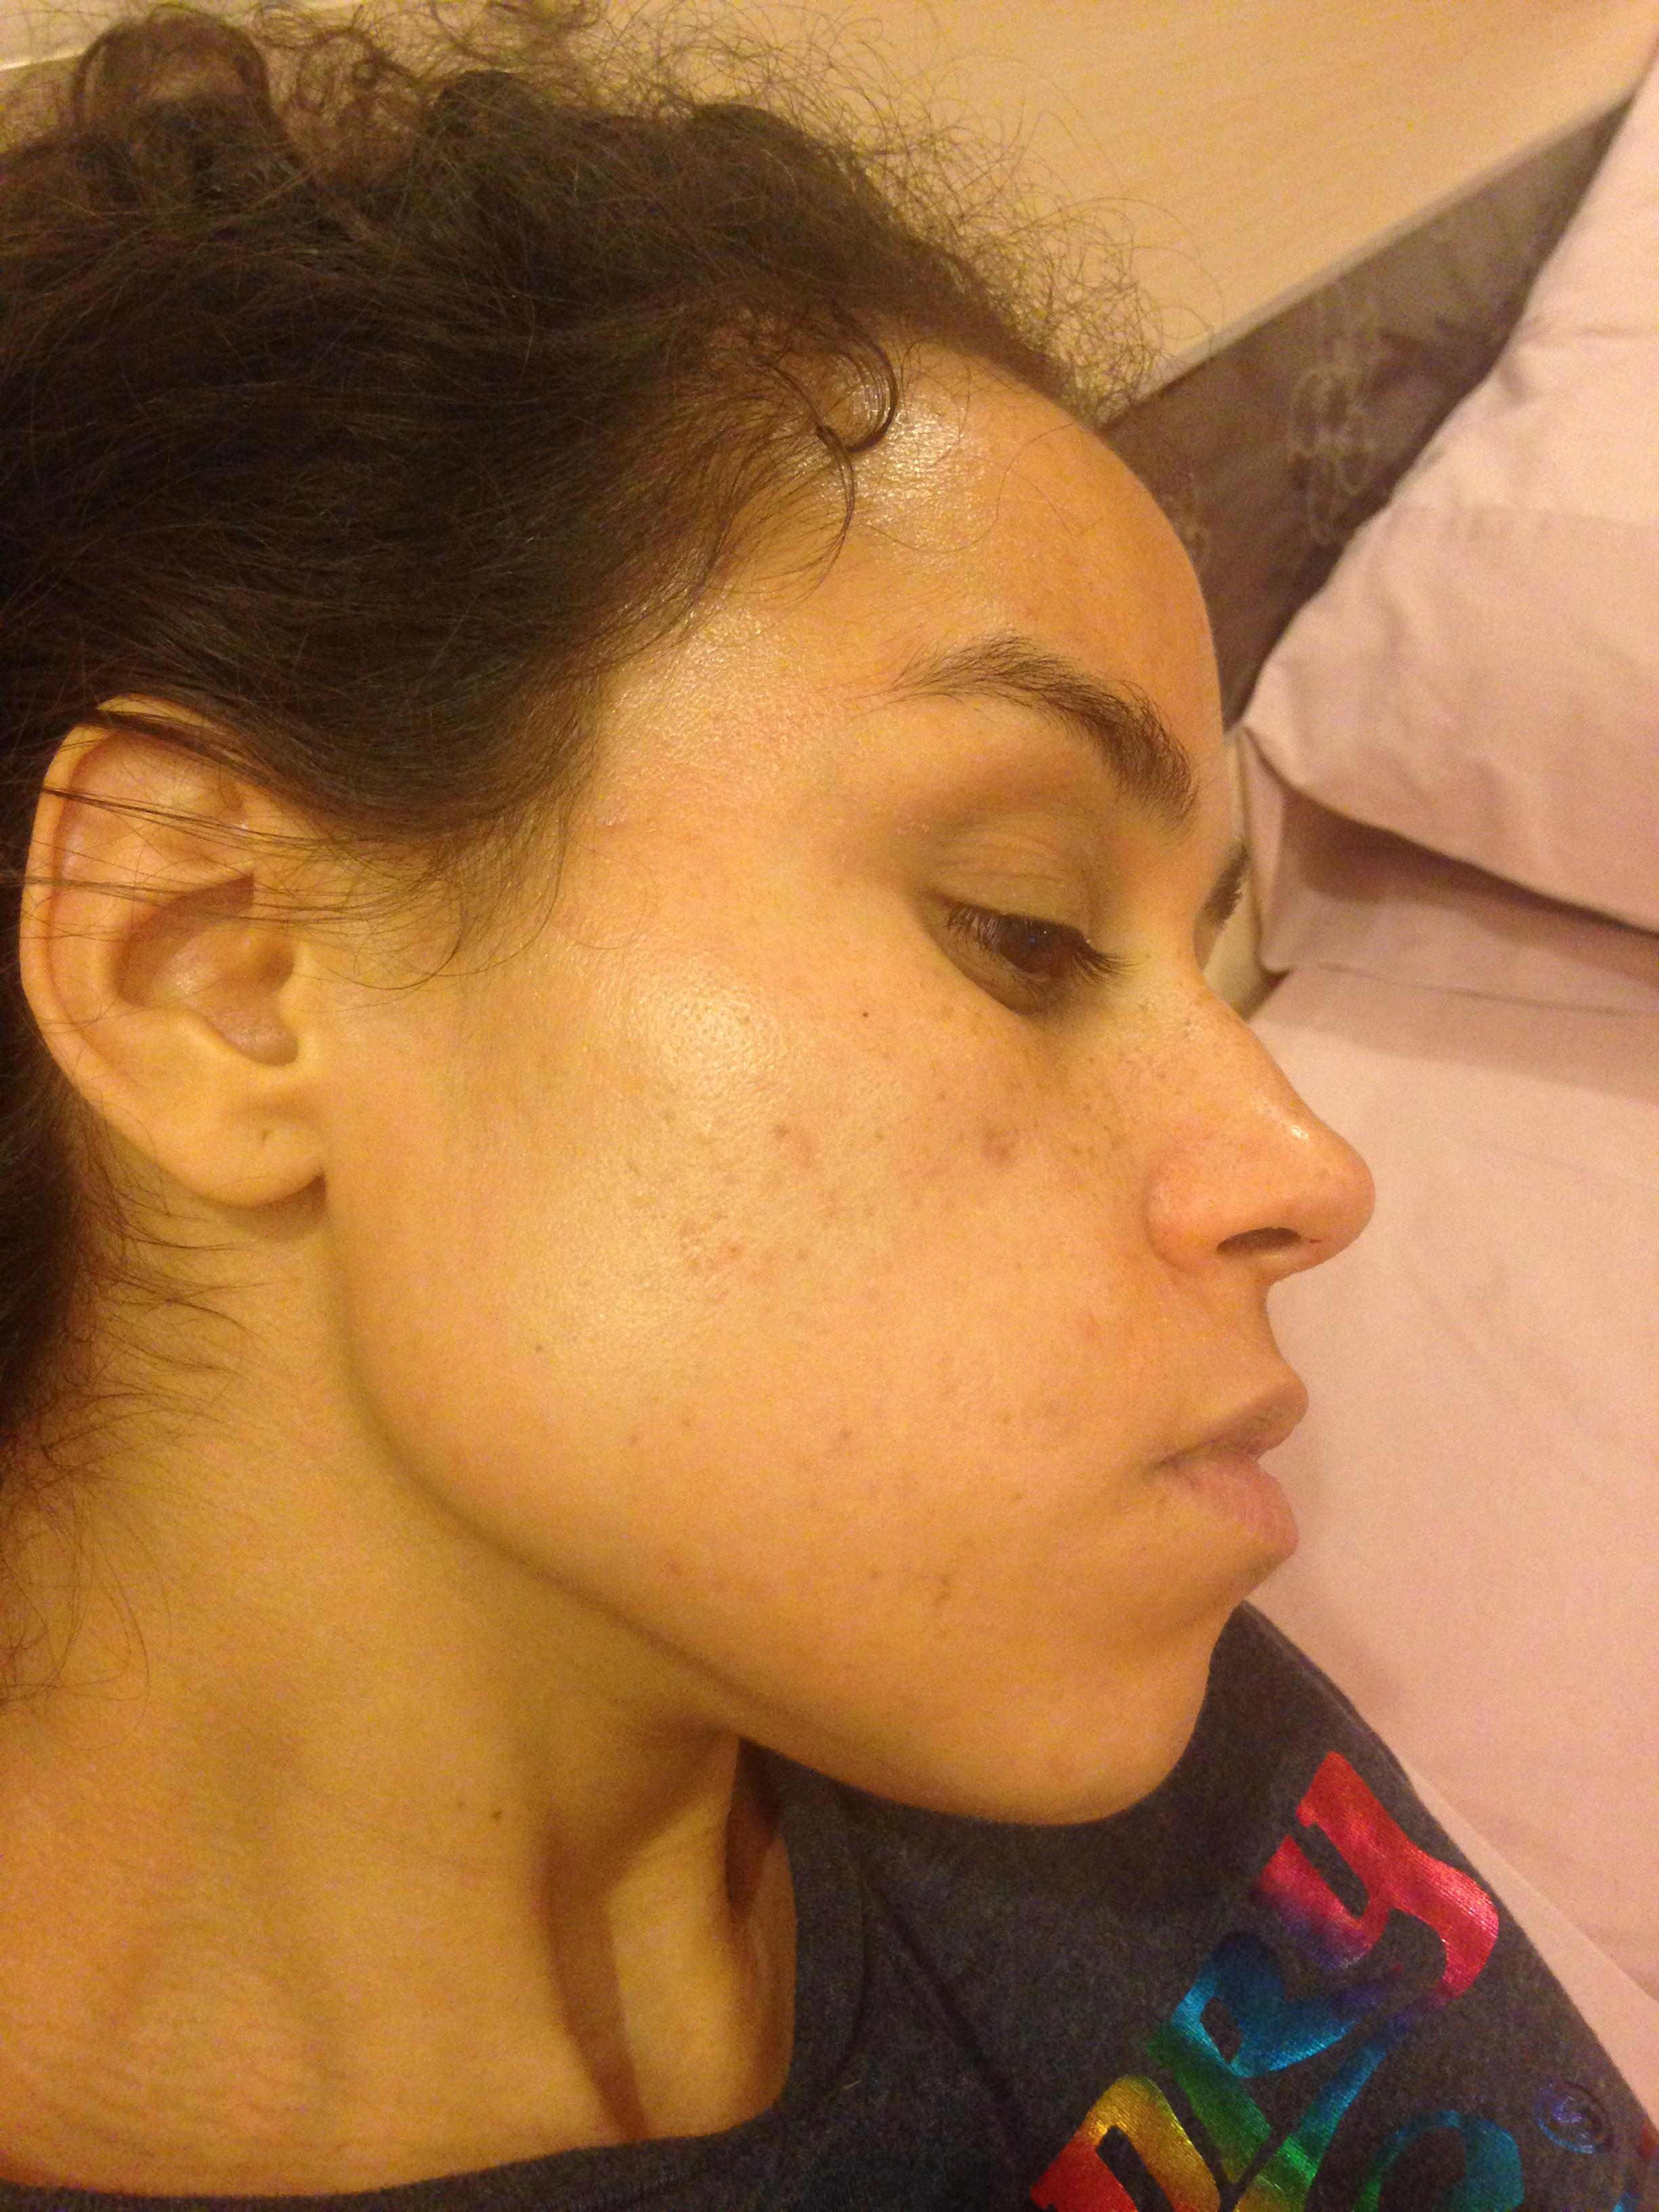 what to do about these spots? PIE? Hyperpigmentation? Pics